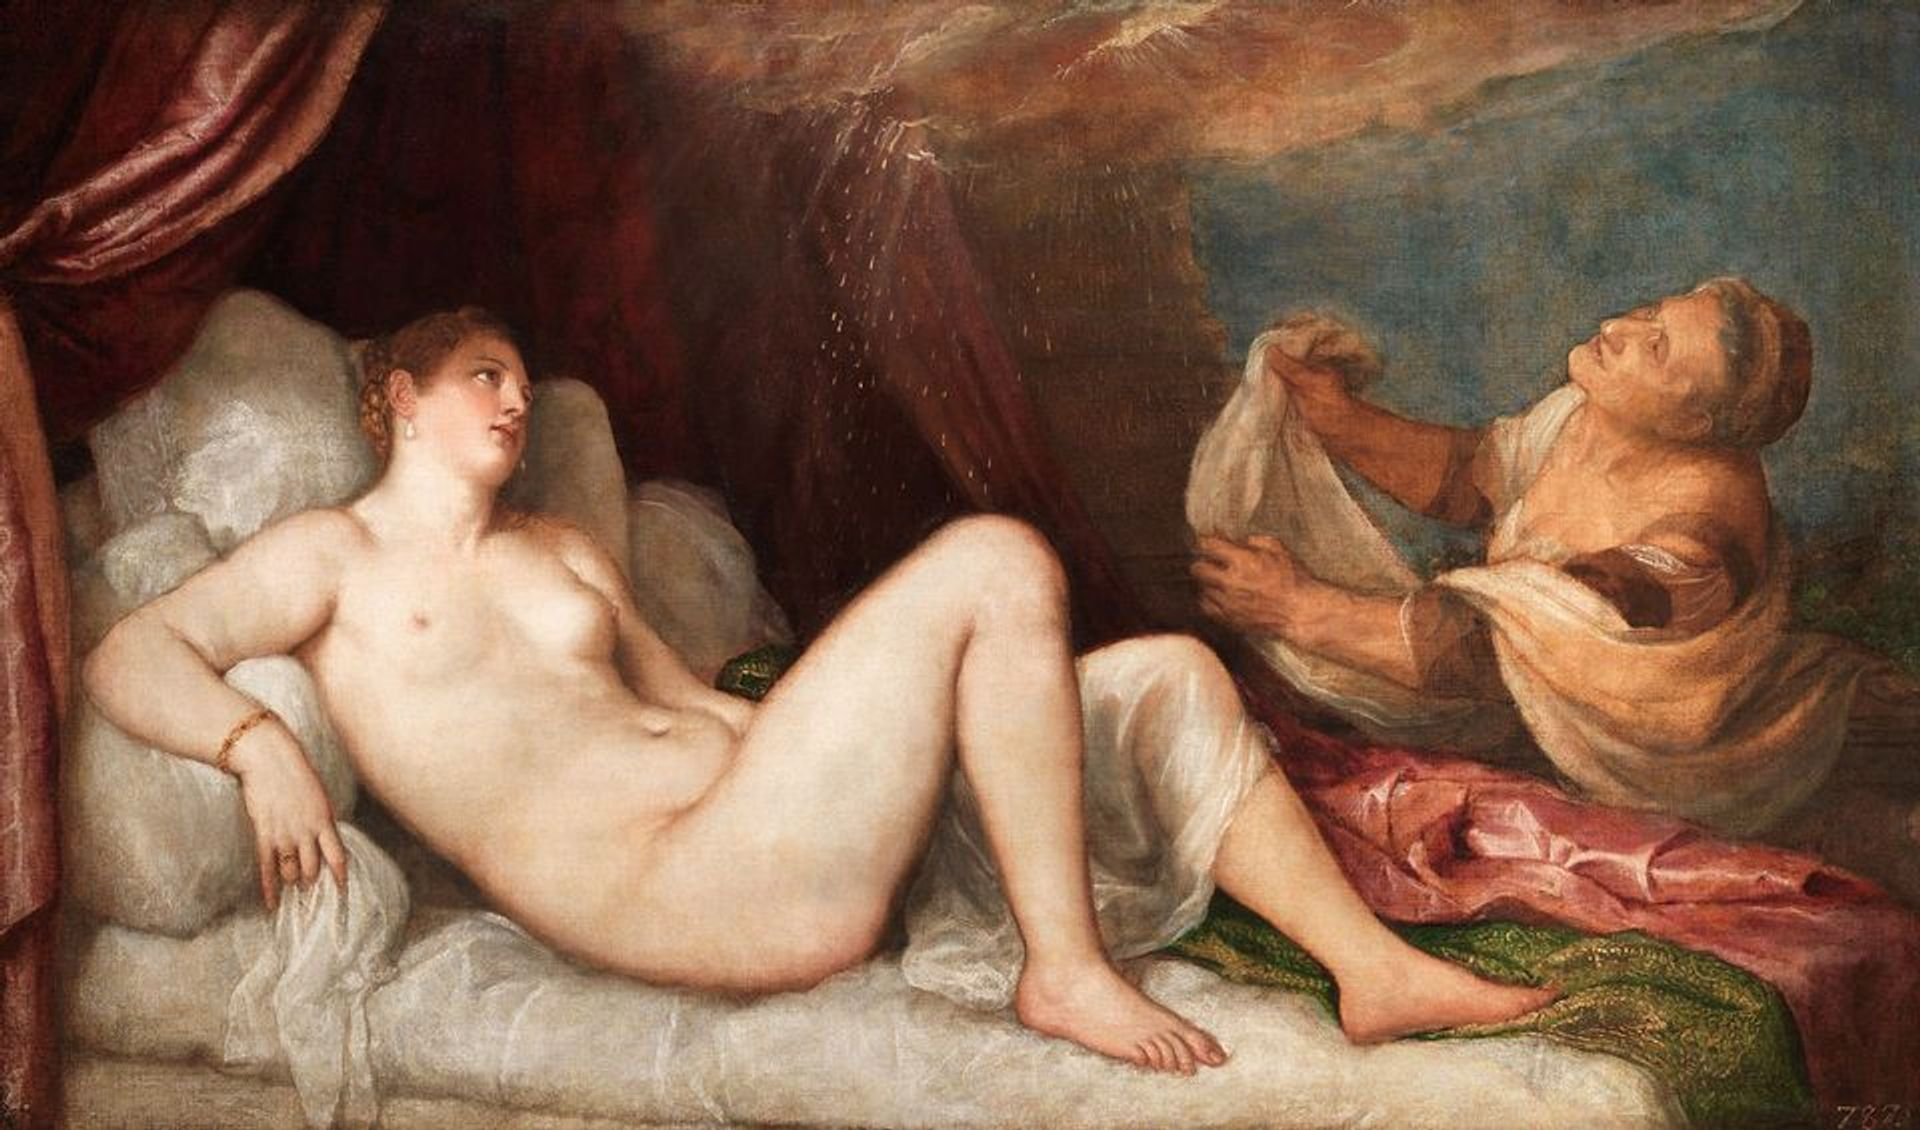 Titian, Danaë (around 1551–53) is in the National Gallery exhibition © Stratfield Saye Preservation Trust